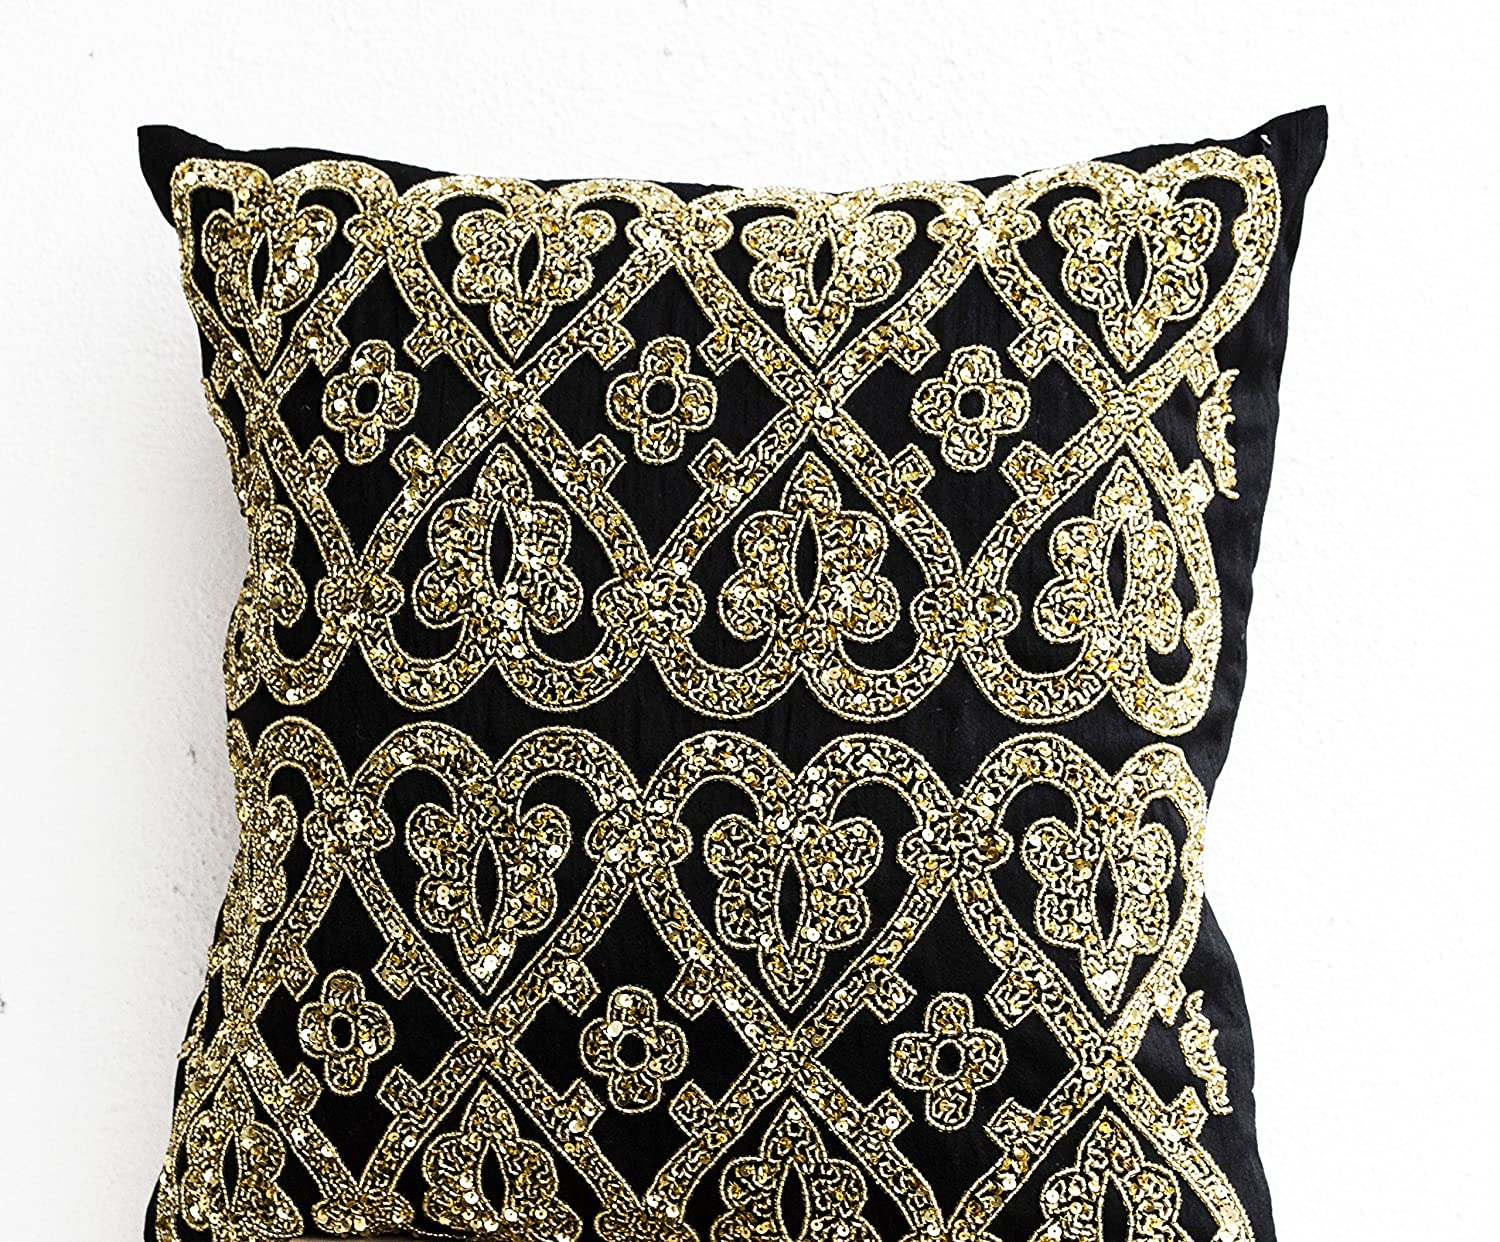 elm pillows house cushion west pillow pin pinterest cover chevron gold metallic